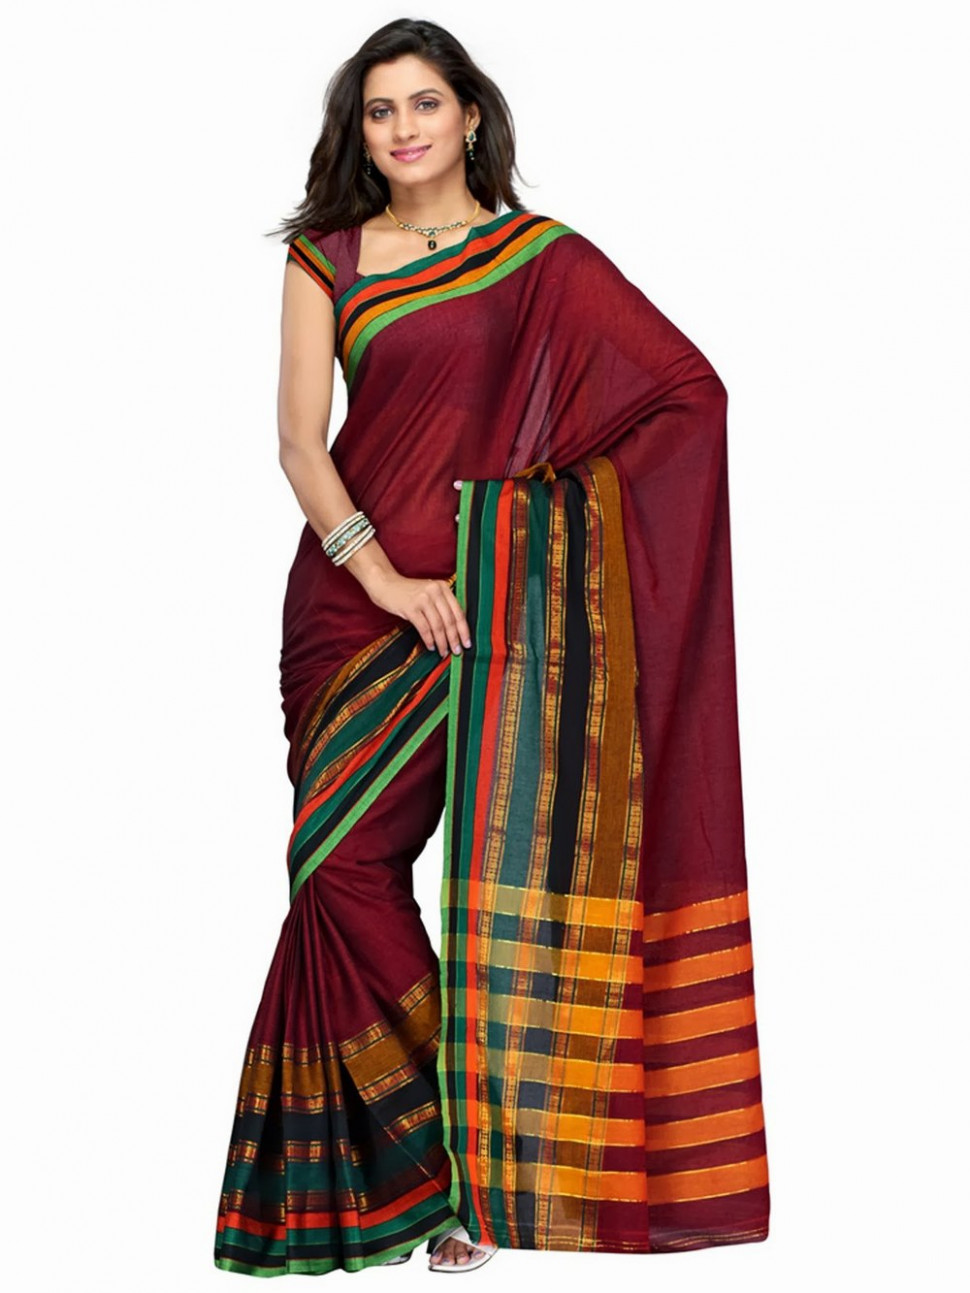 Cotton Handloom Saree - Buy The Chennai Silks Cotton